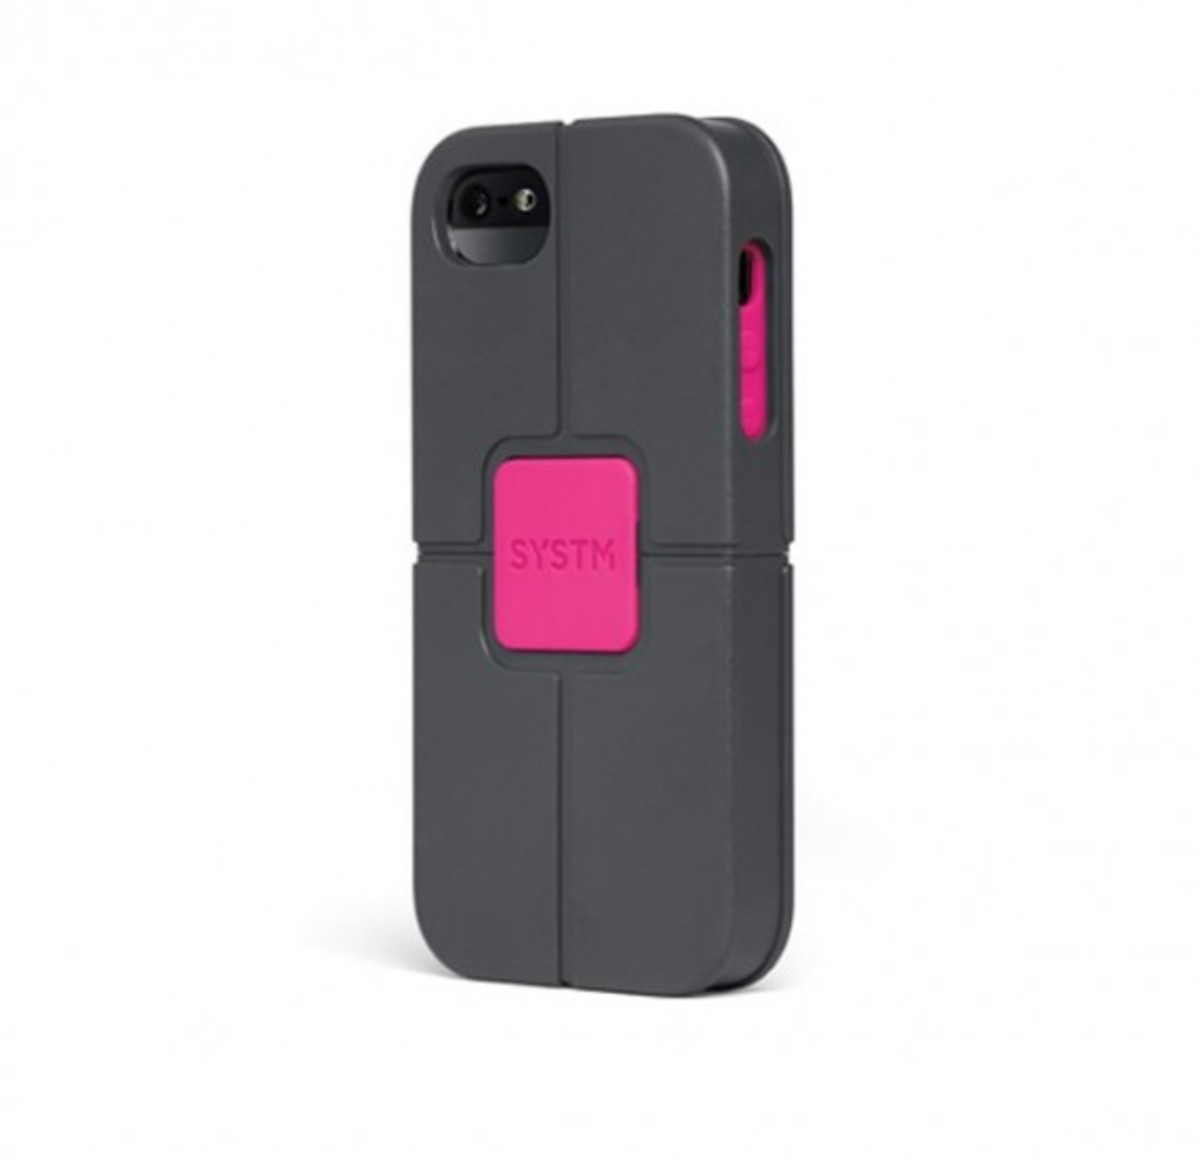 systm-iphone-5-cases-02